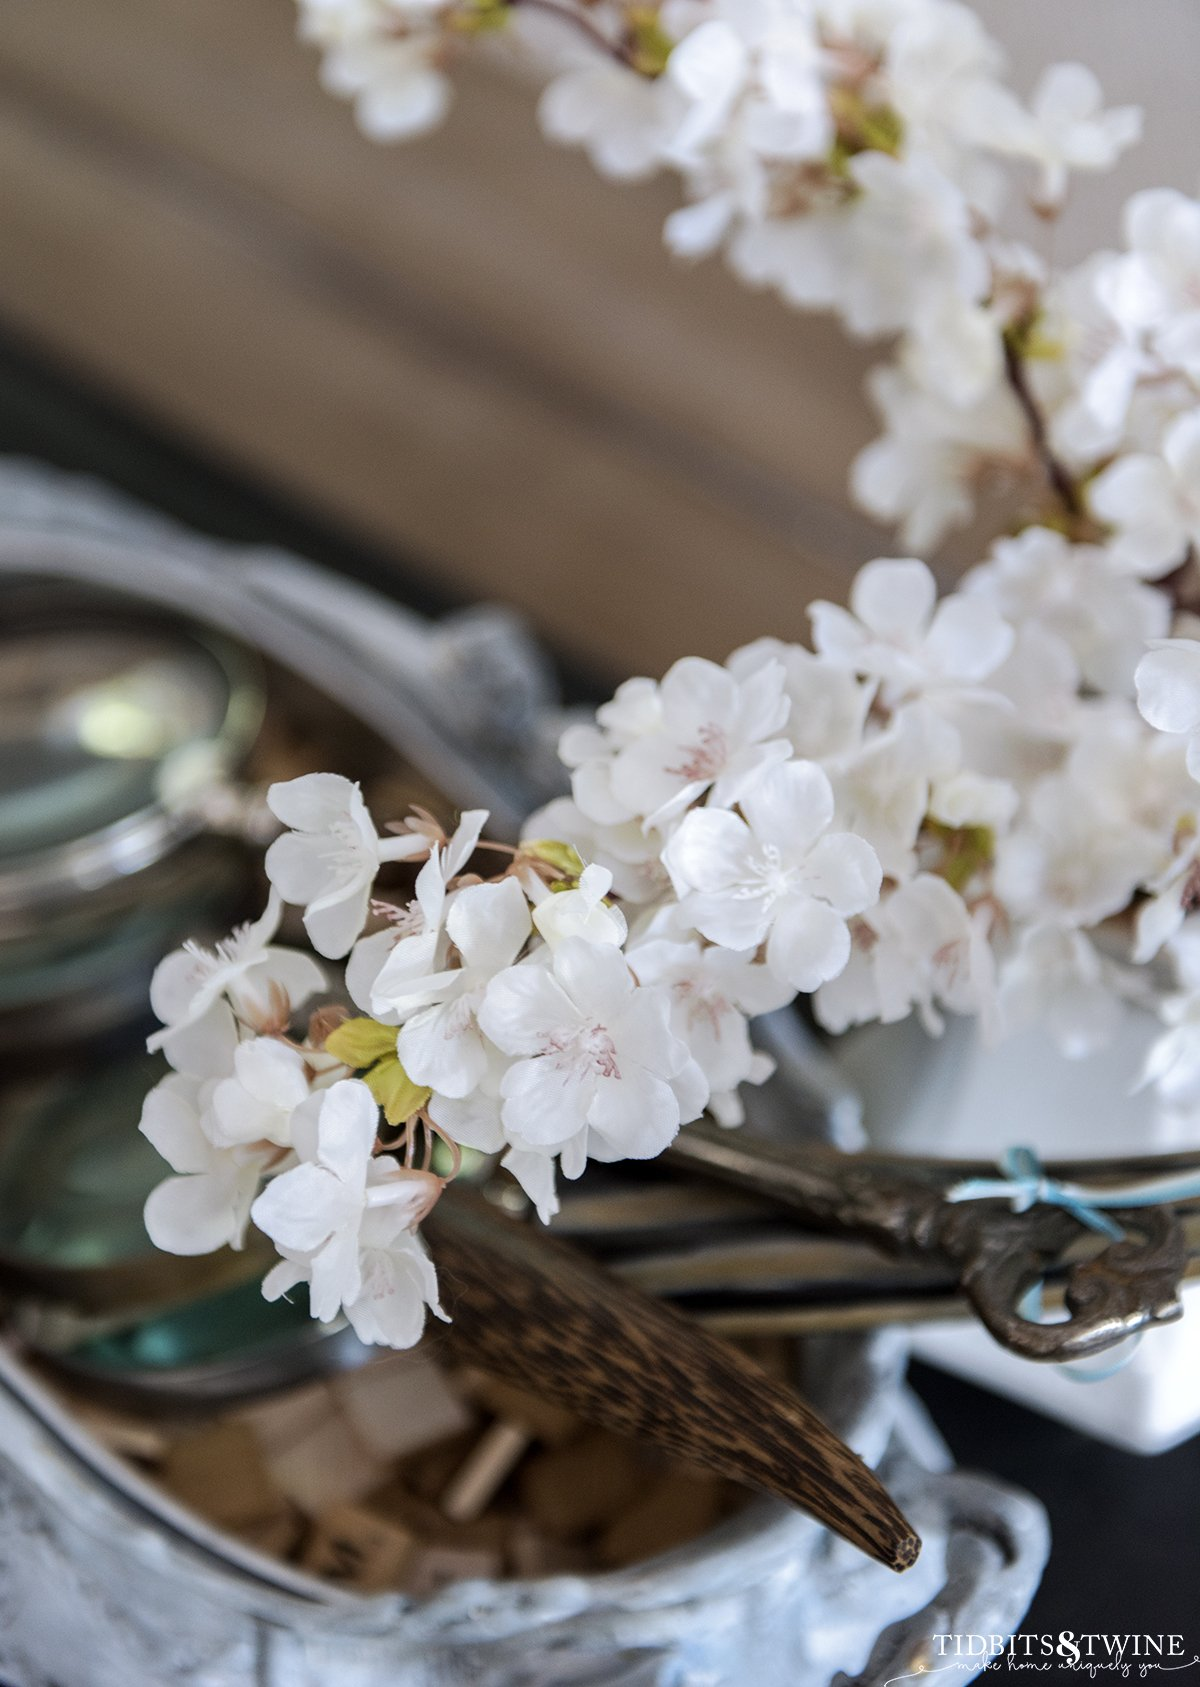 closeup of fake cherry blossom stems that are white with slight pink centers and magnifying glasses in the background